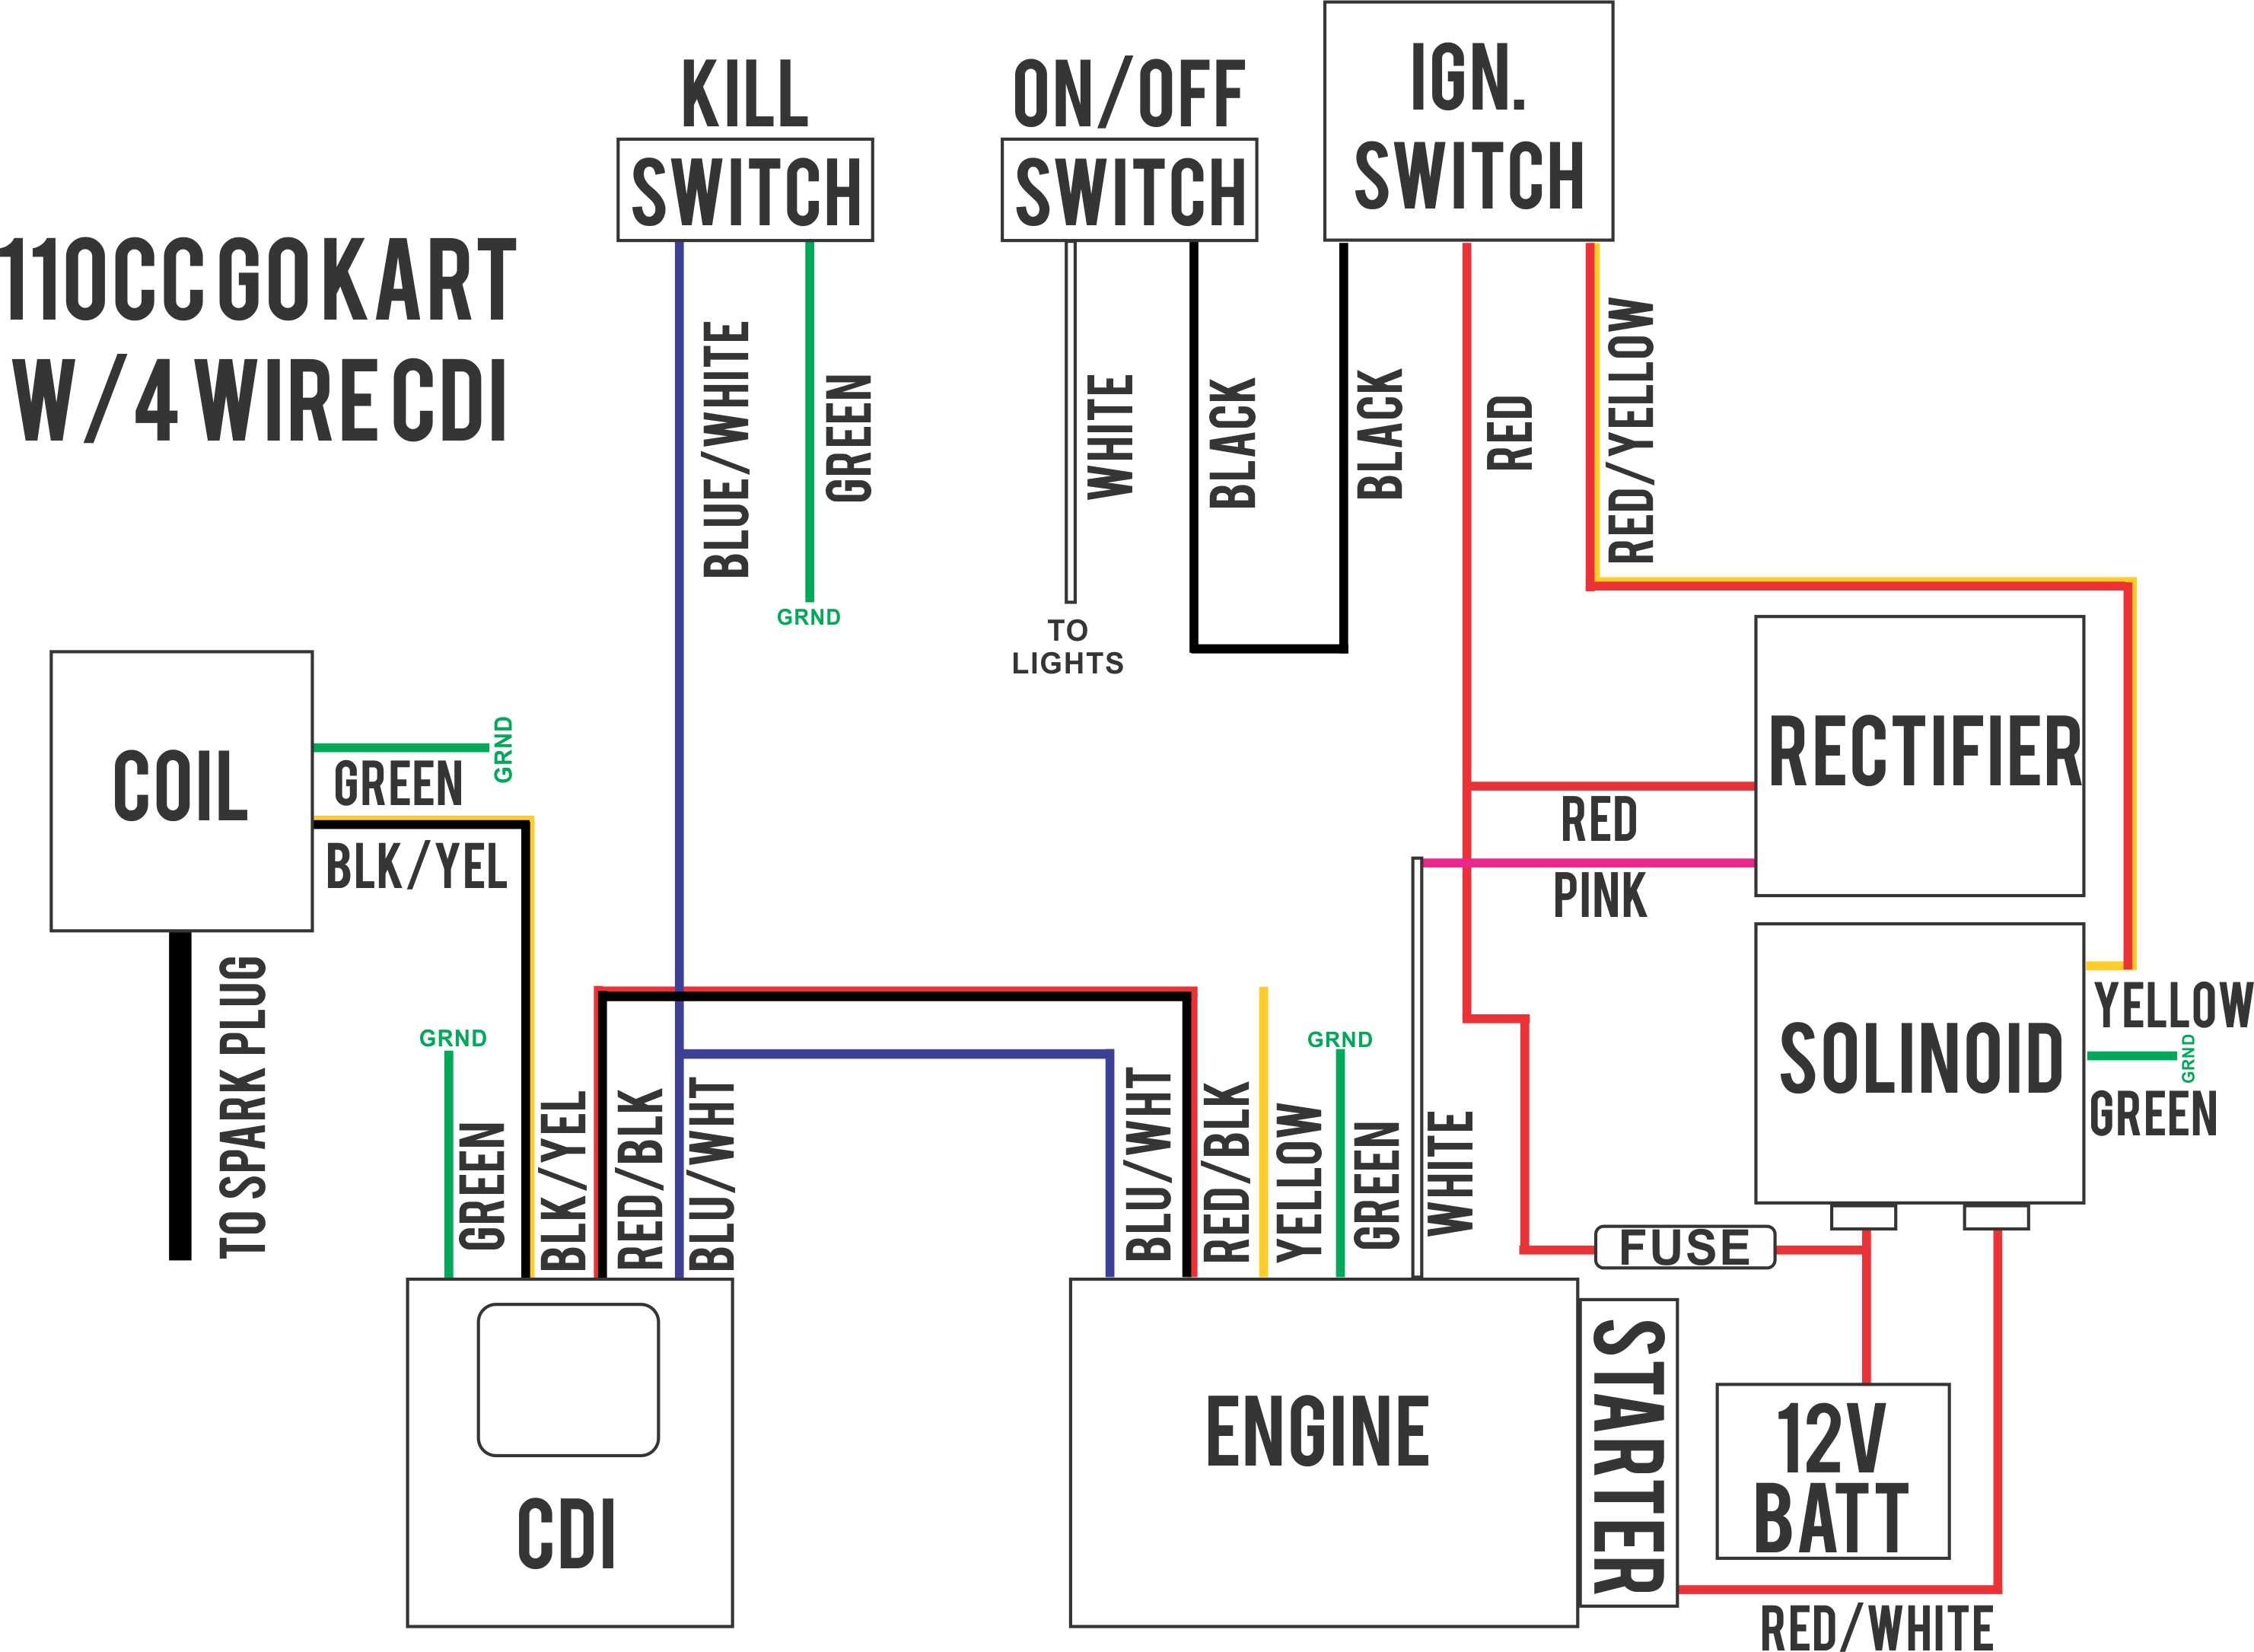 50cc Scooter Ignition Switch Wiring Diagram - Wiring Diagram Networks | Wildfire Scooter Wiring Diagram |  | Wiring Diagram Networks - blogger